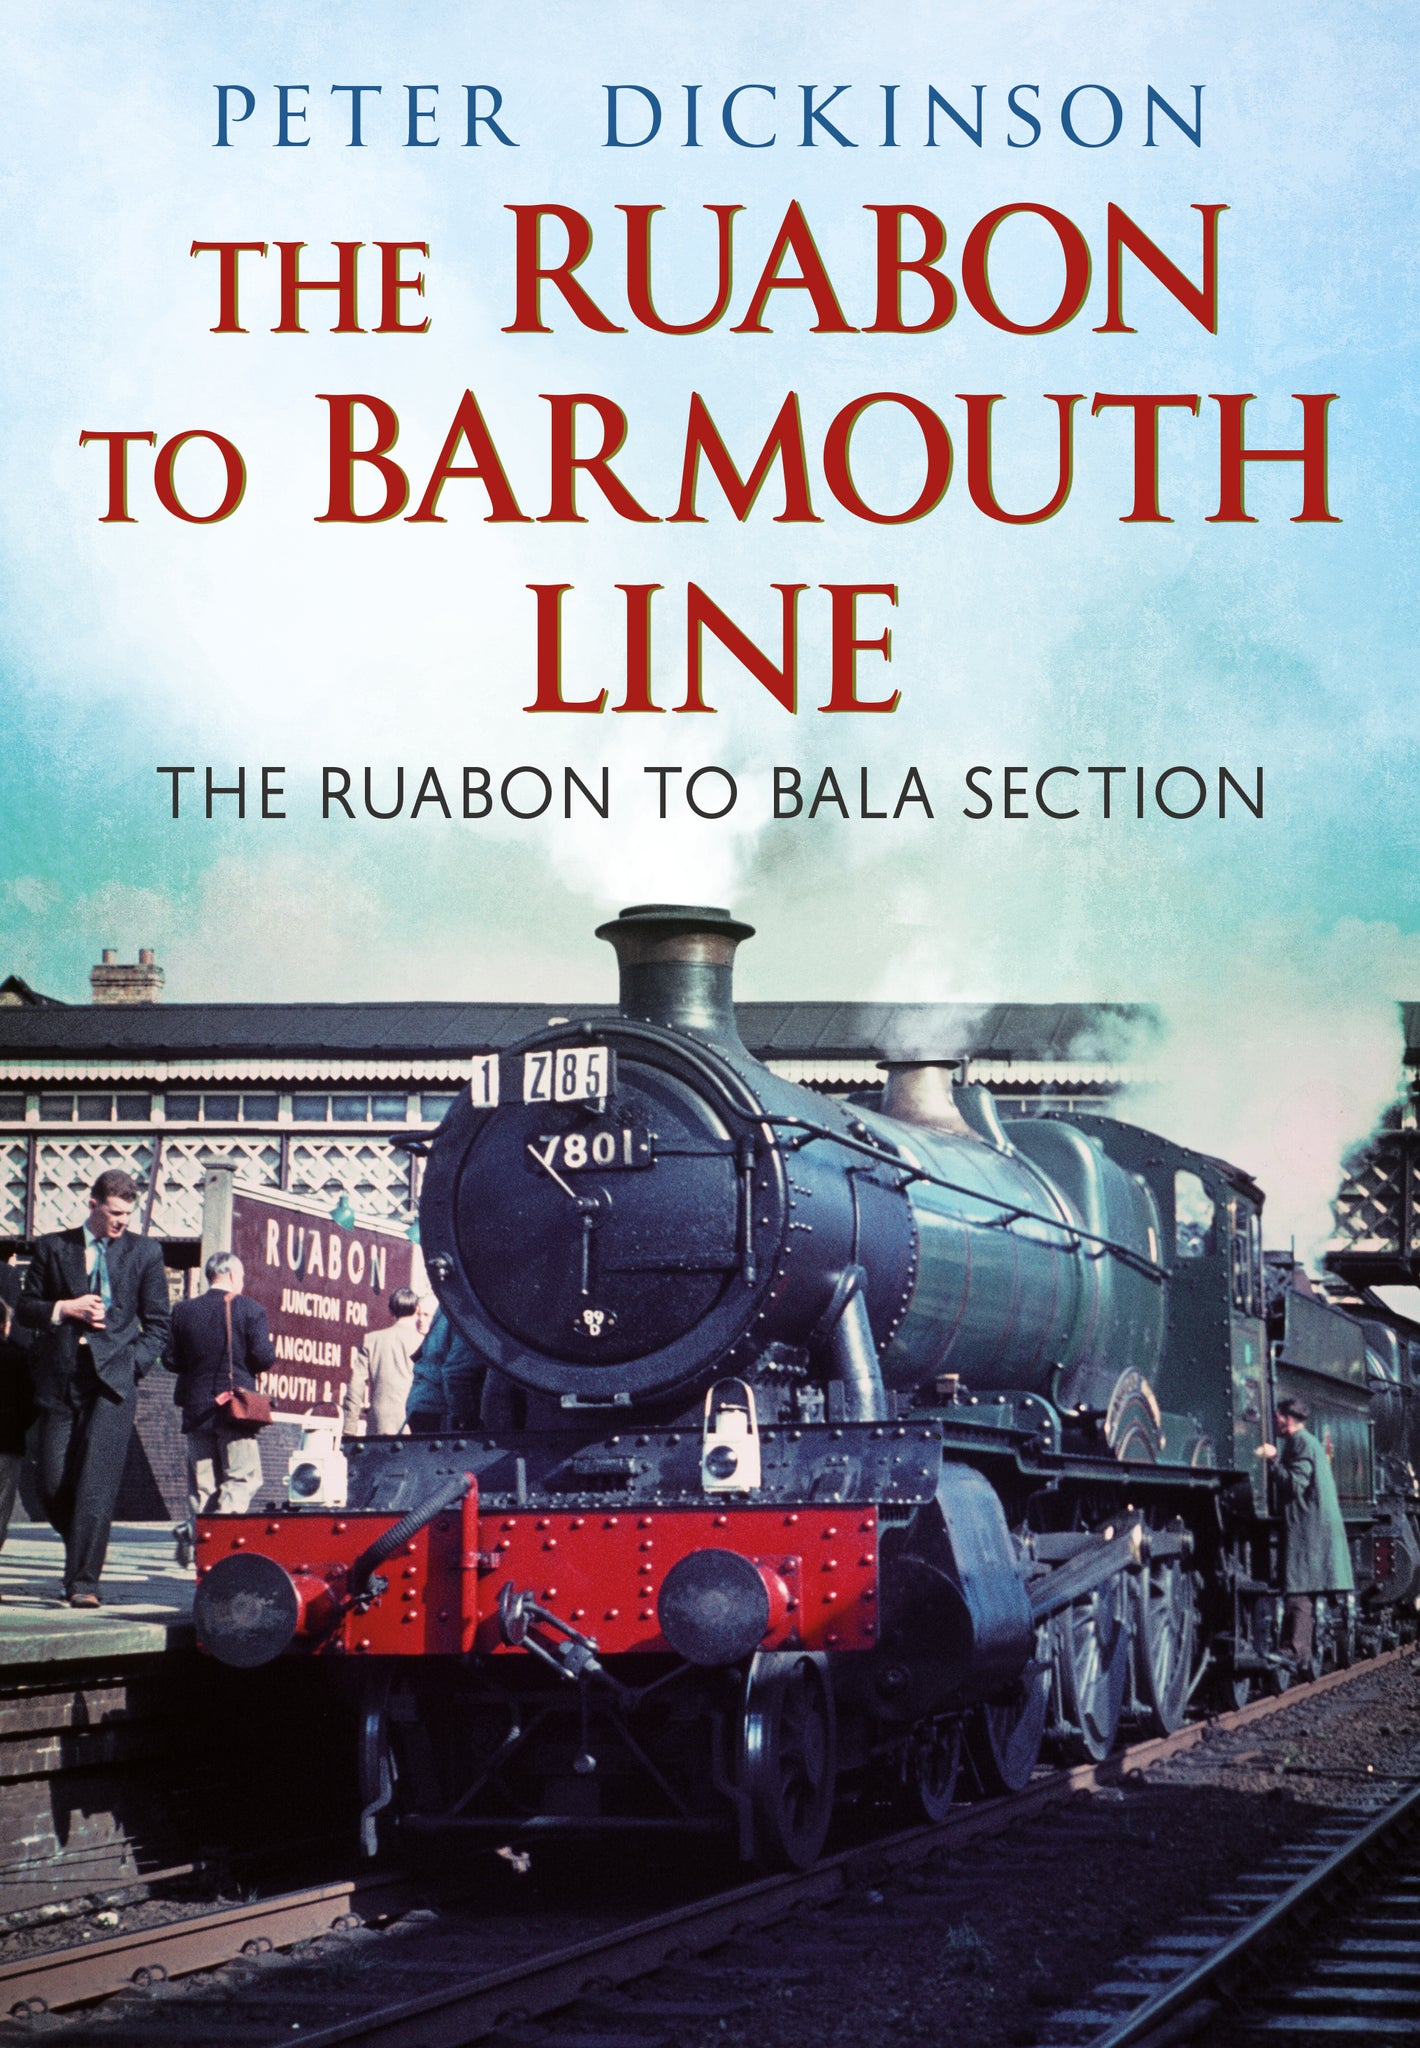 The Ruabon to Barmouth Line: The Ruabon to Bala Section